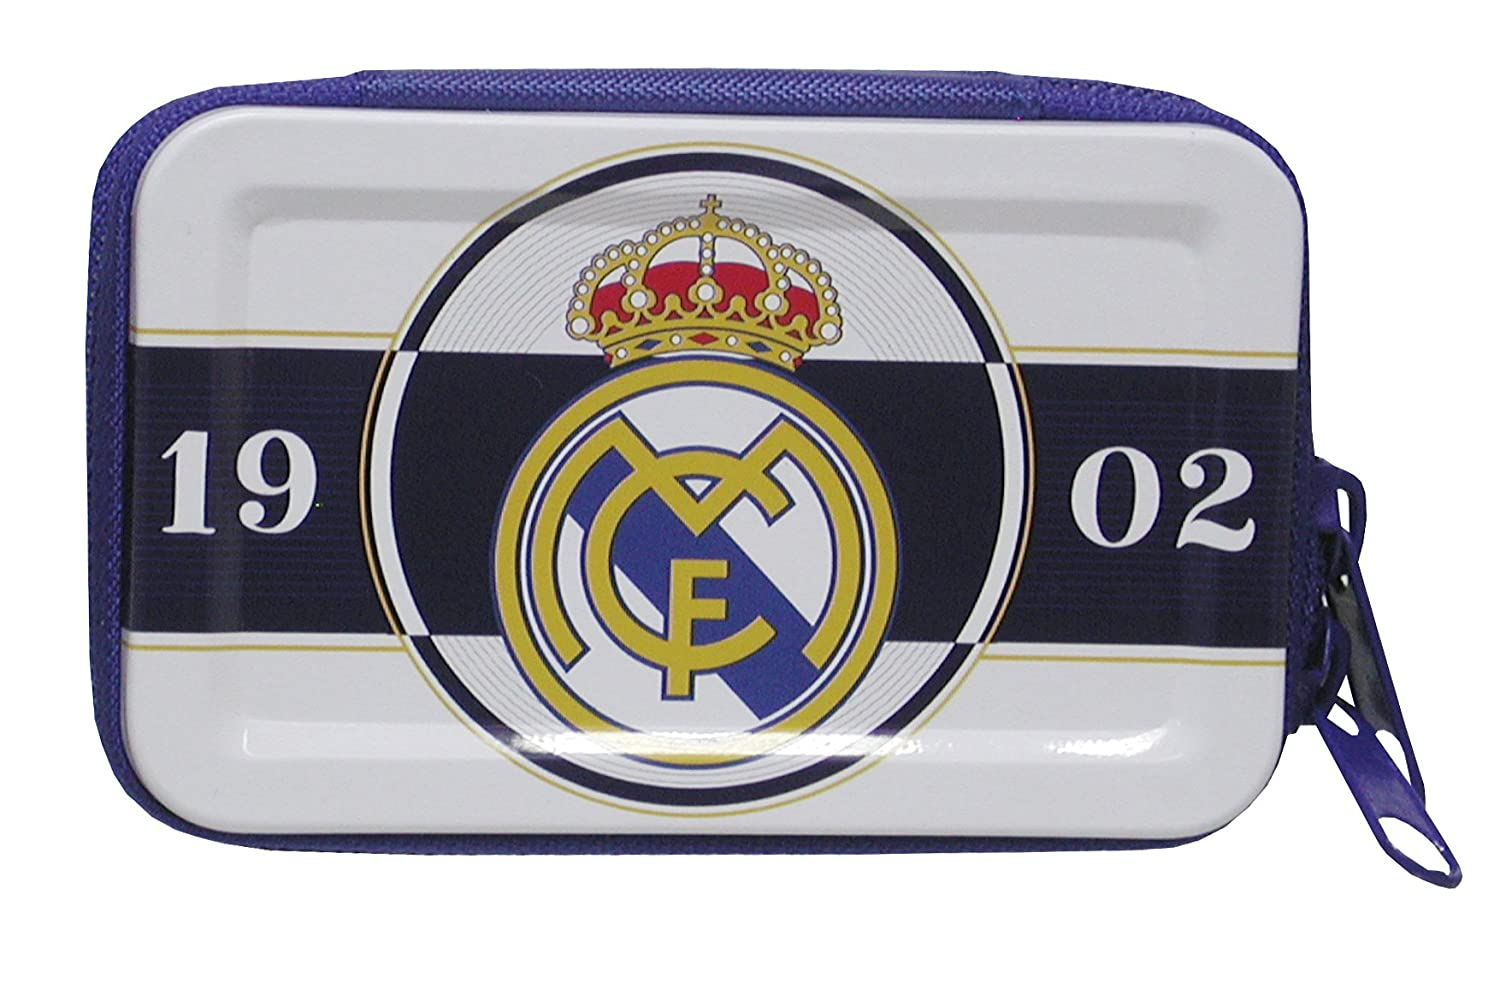 REAL MADRID CF Monedero rectangular de metal con cremallera